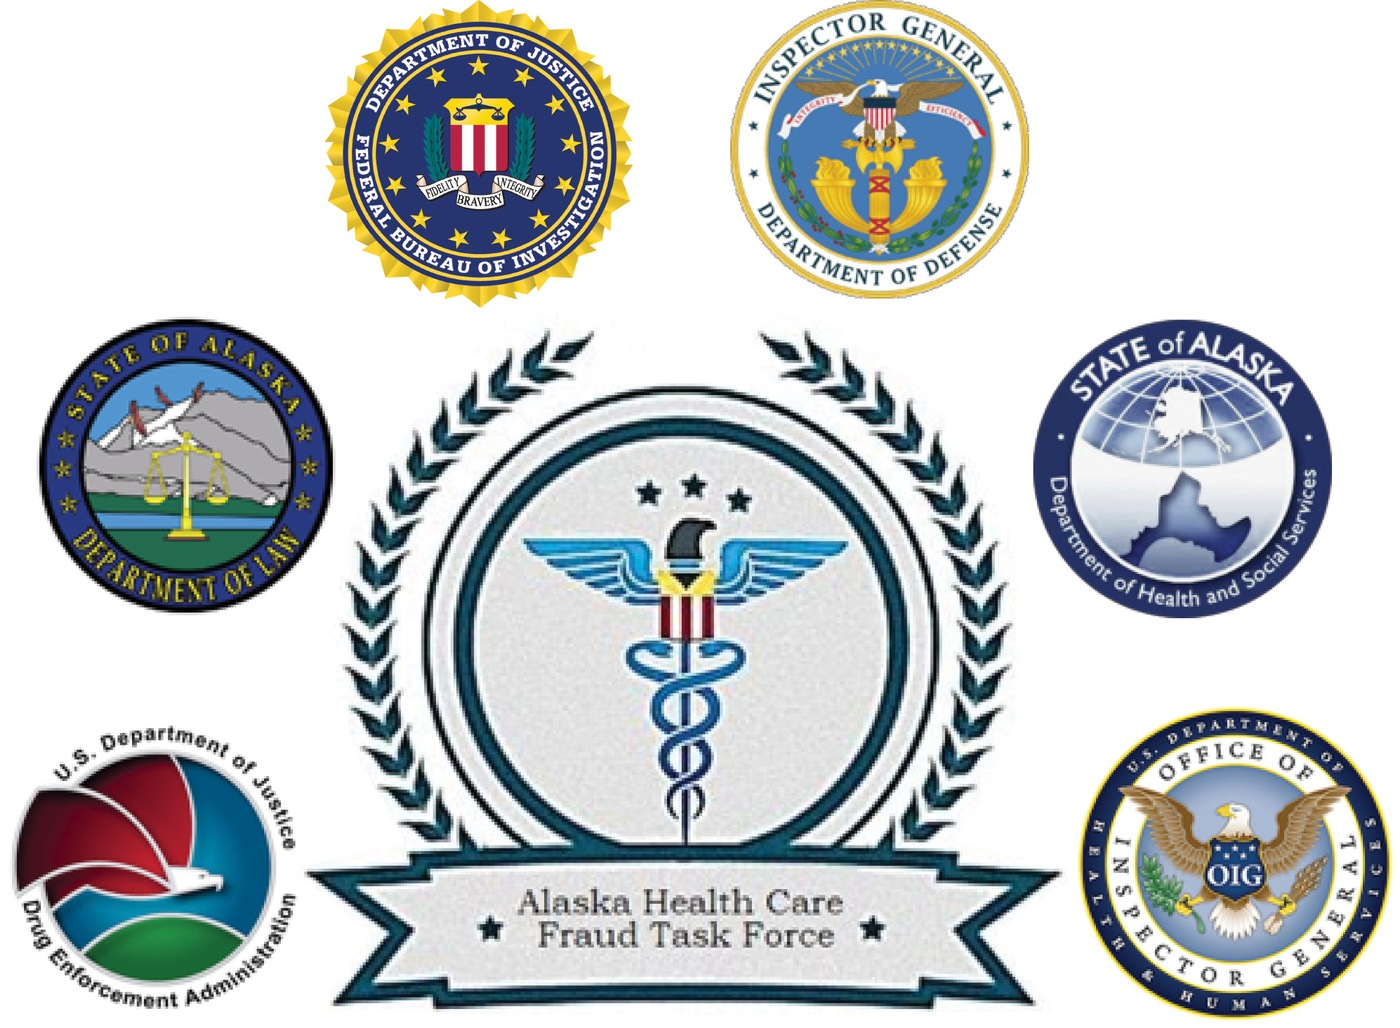 Logo of Alaska Health Care Fraud Task Force with seals from partner agencies including the FBI, DOD, DEA, HHS, Alaska Department of Law, and Alaska Department of Health and Social Services